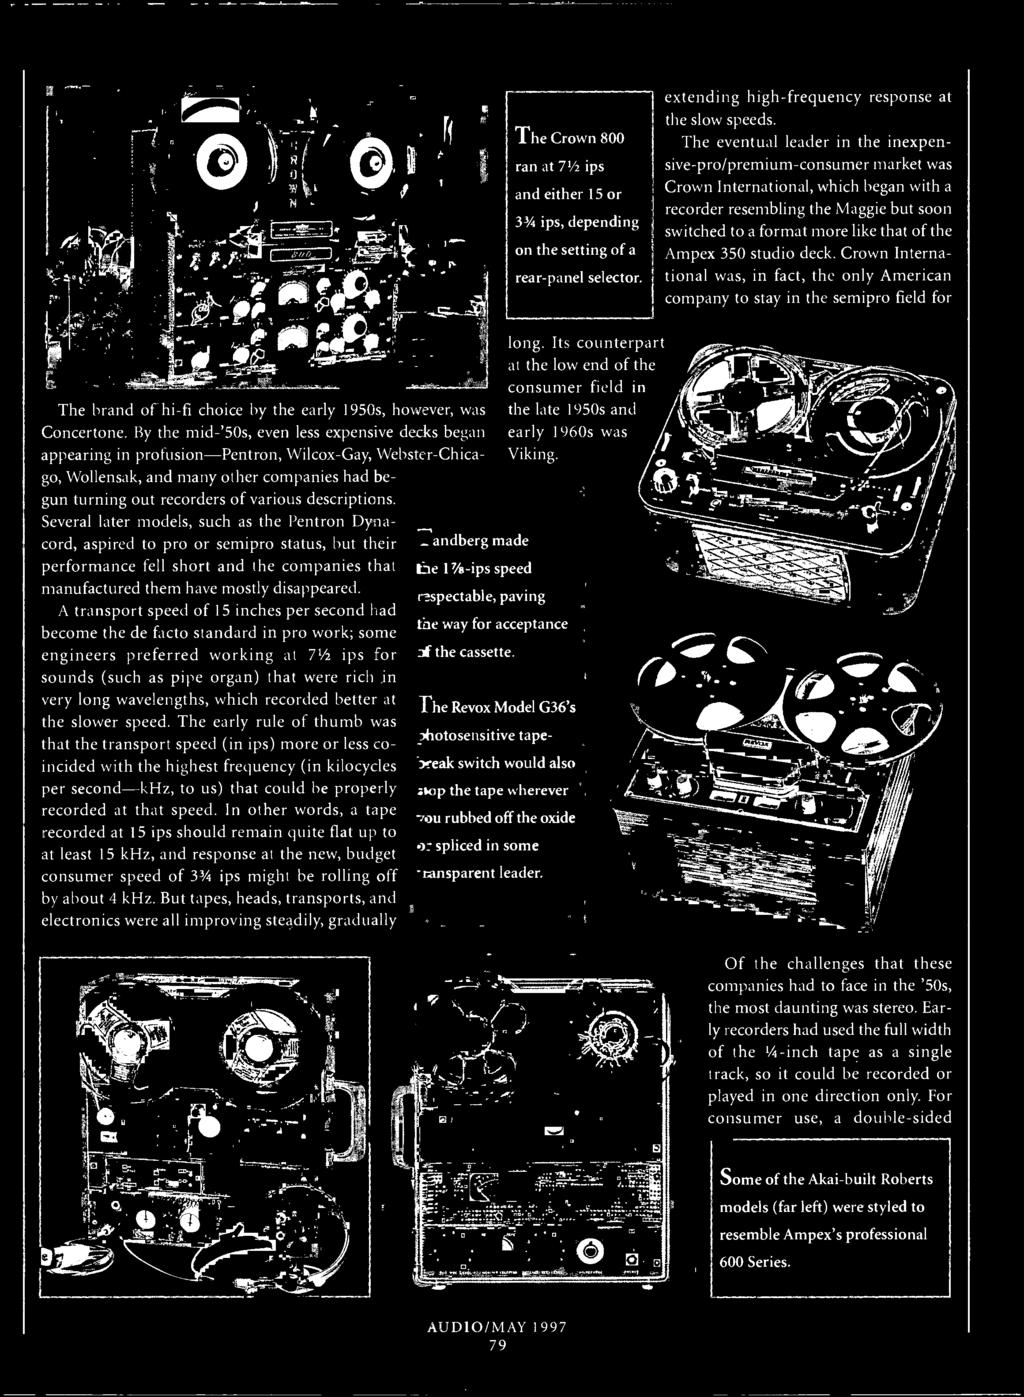 descriptions. Several later models, such as the Pentron Dynacord, aspired to pro or semipro status, but their performance fell short and the companies that manufactured them have mostly disappeared.